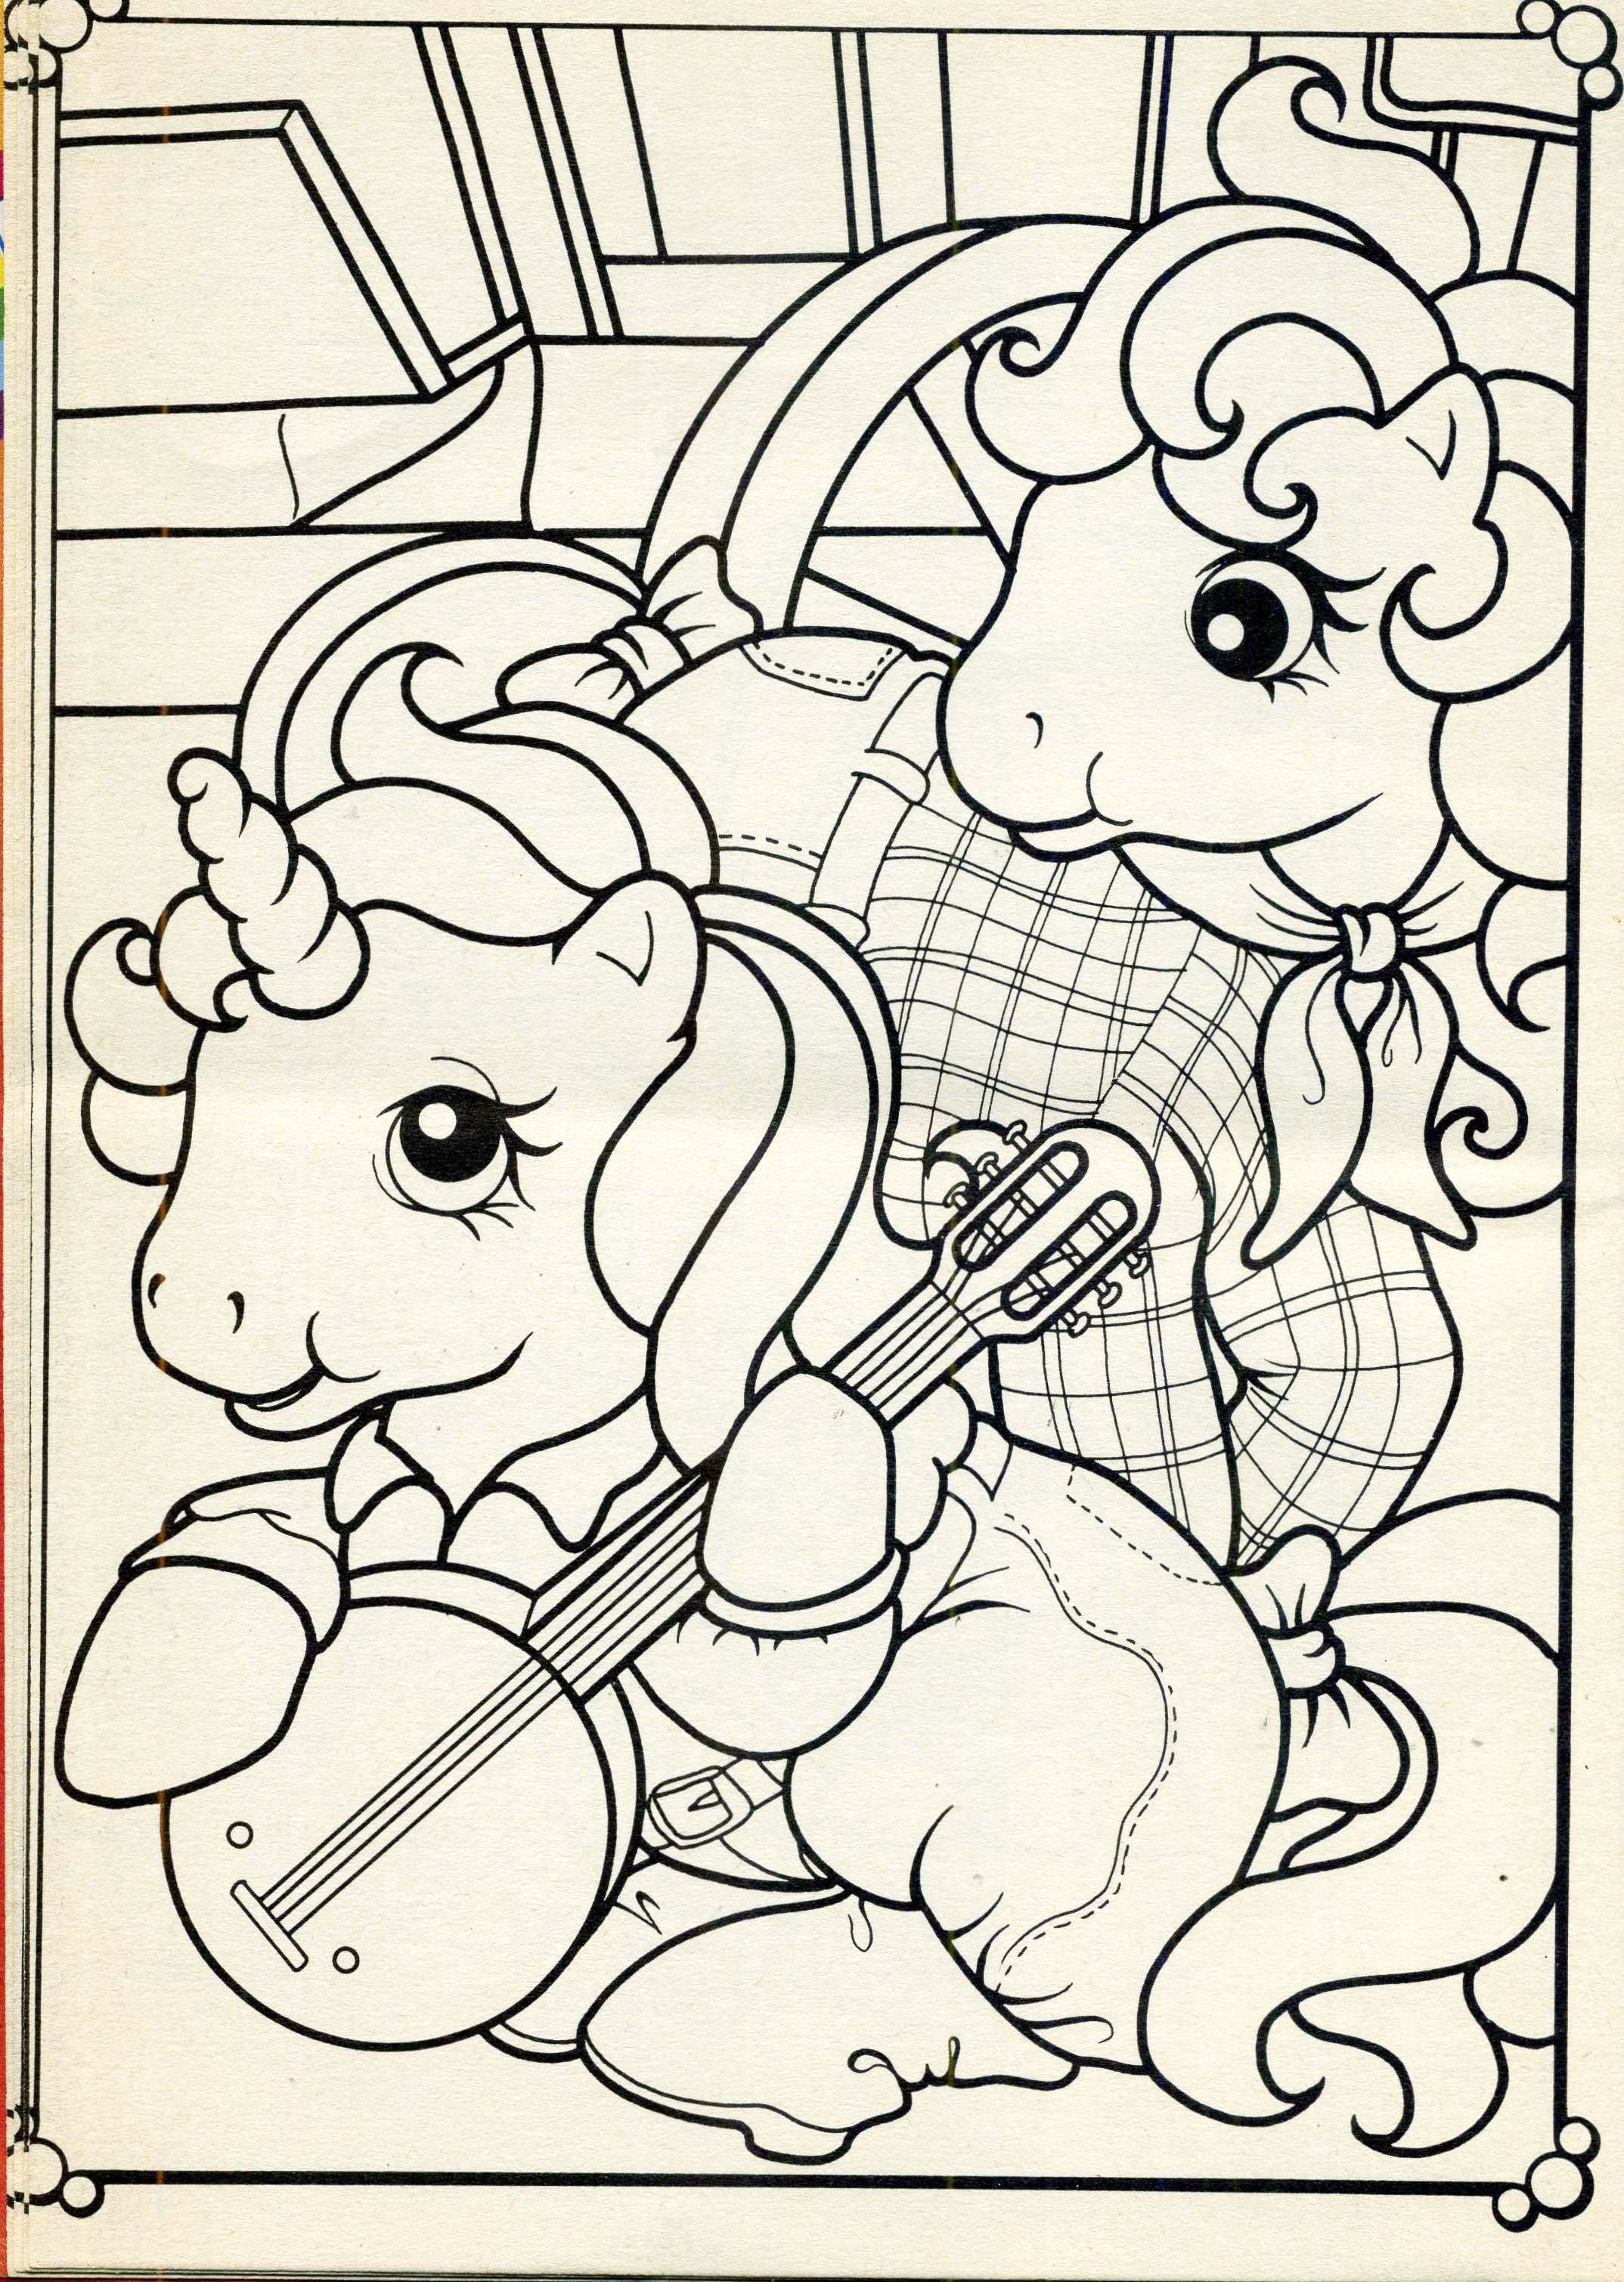 th?id=OIP.ou0KW7sfzwWsRfgh2Oy8dwDVEs&pid=15.1 additionally my little pony coloring pages on my little pony mini coloring book in addition my little pony mini coloring book 2 on my little pony mini coloring book also my little pony mini coloring book 3 on my little pony mini coloring book further my little pony mini coloring book 4 on my little pony mini coloring book